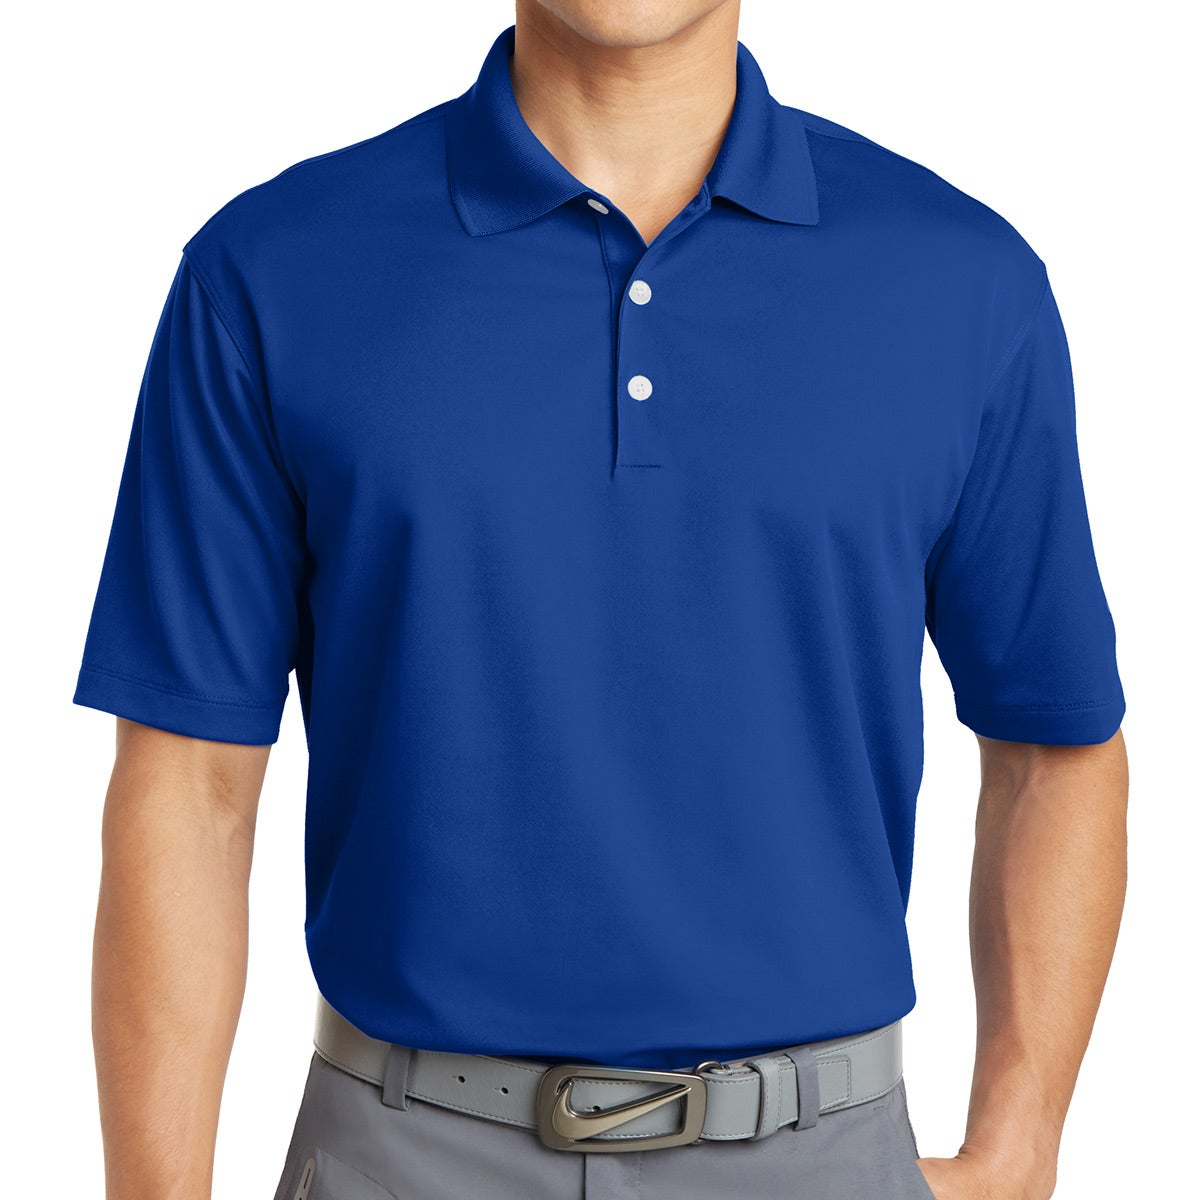 nike golf dri fit micro pique polo shirt embroidered